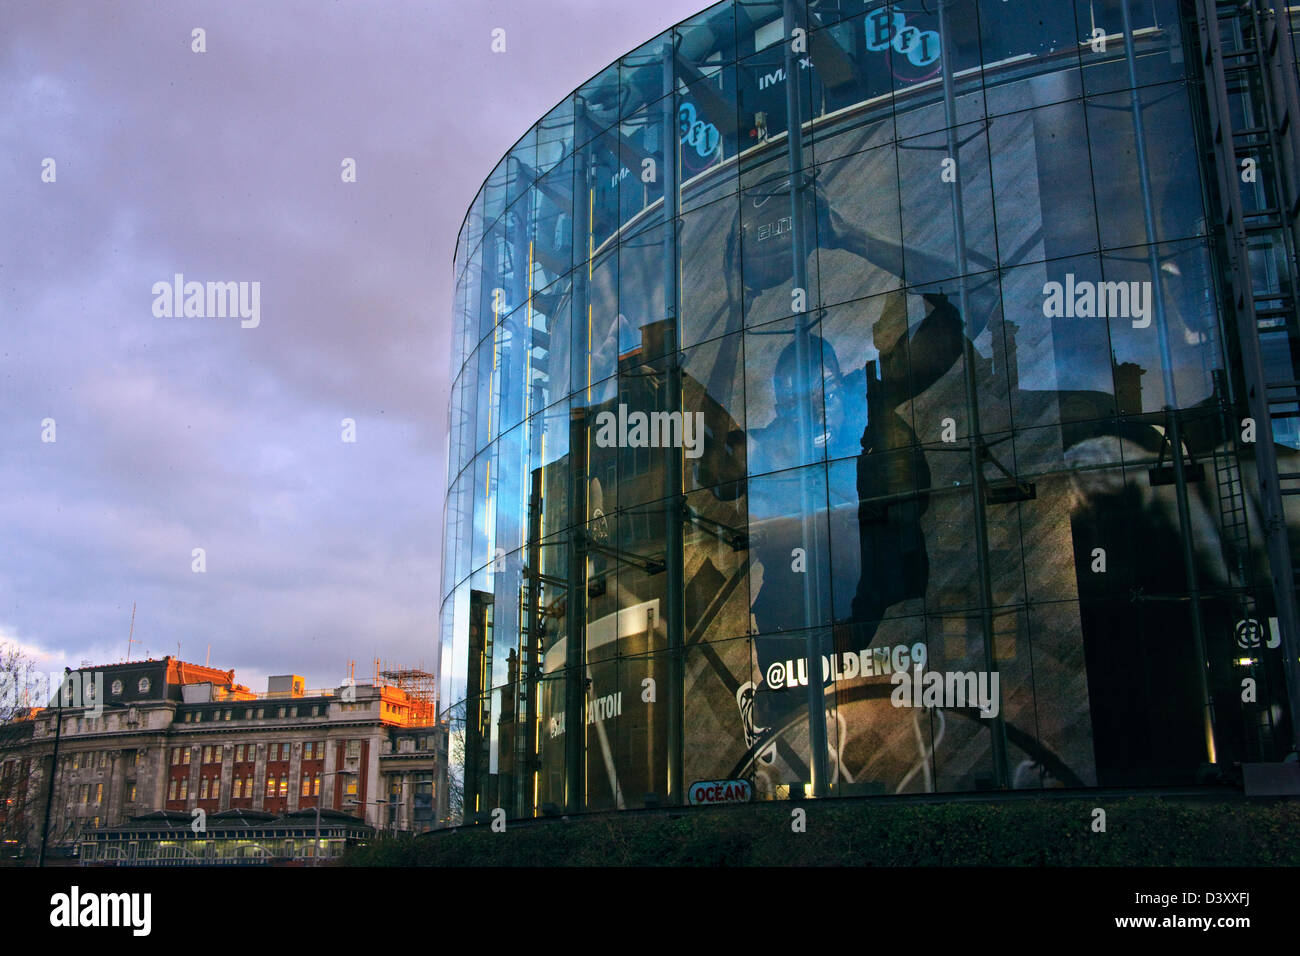 BFI IMAX cinema, Waterloo, London SE1, United Kingdom - Stock Image